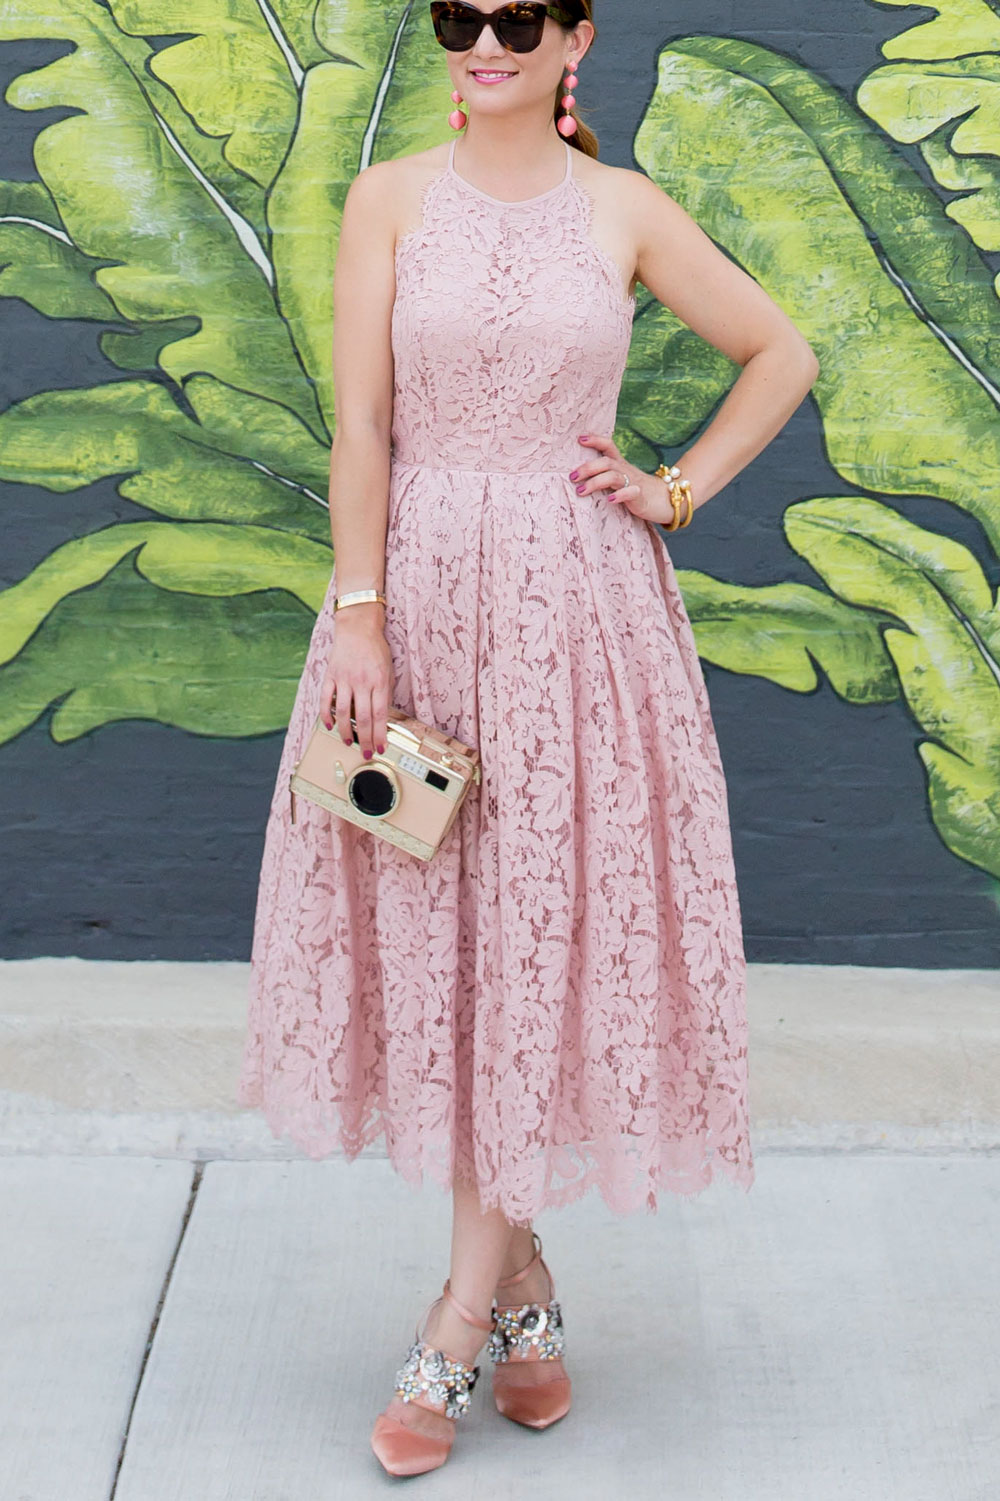 Blush Lace Fit And Flare Midi Dress At A Chicago Leaf Mural